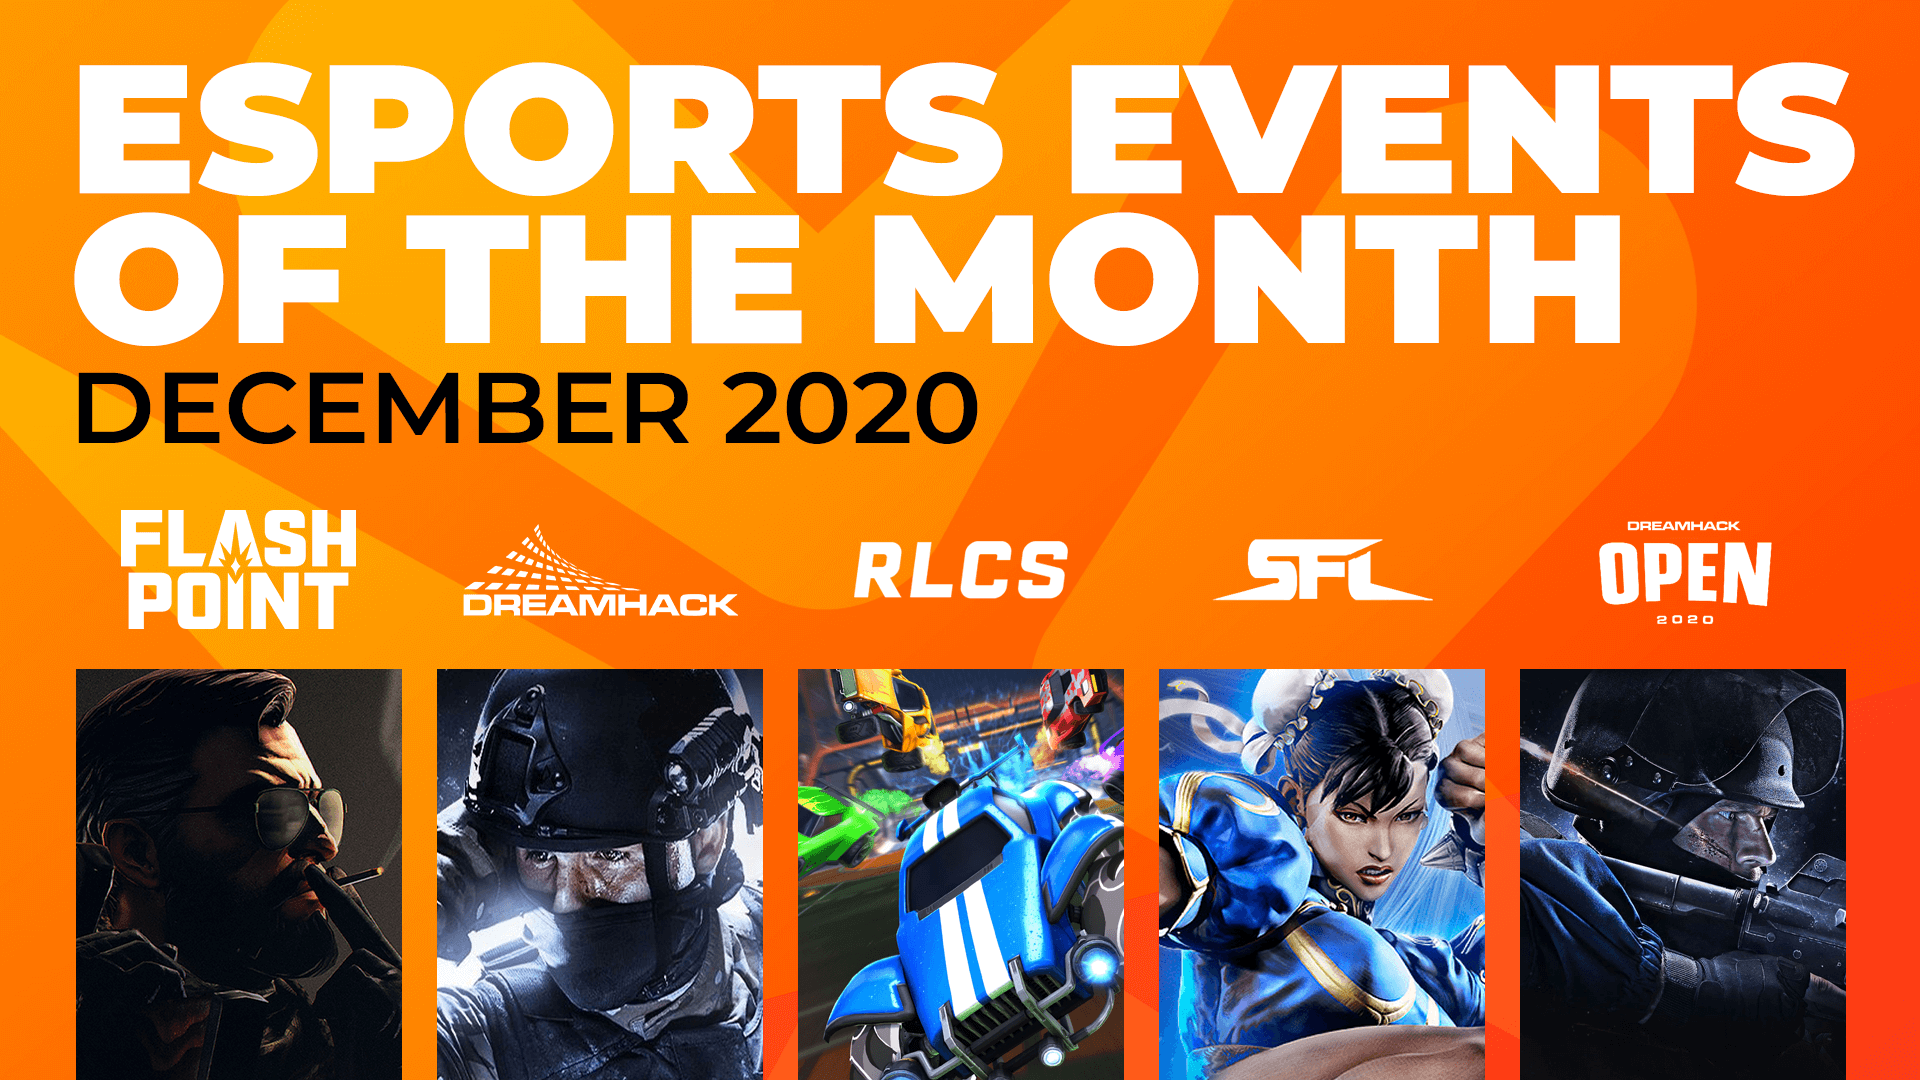 Esports Events to Watch This Month (December)